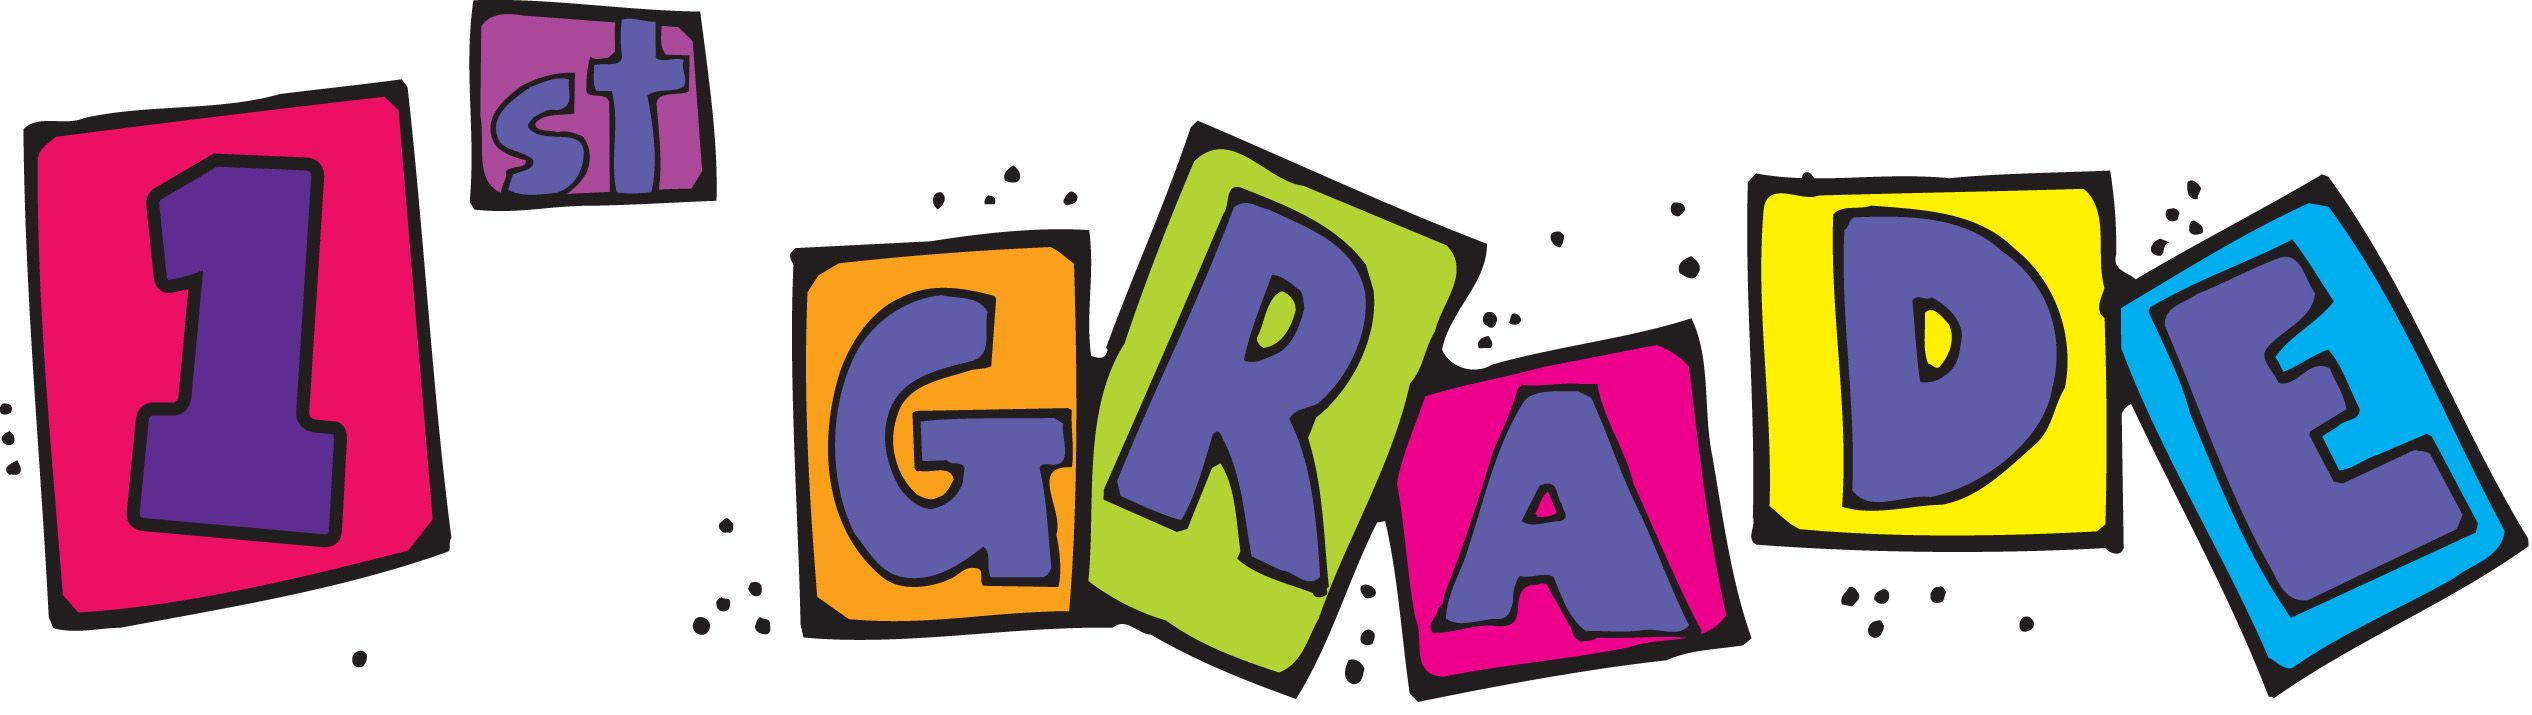 Welcome to grade 1 clipart clip library welcome to 1st grade - Google Search | school-clip art ... clip library